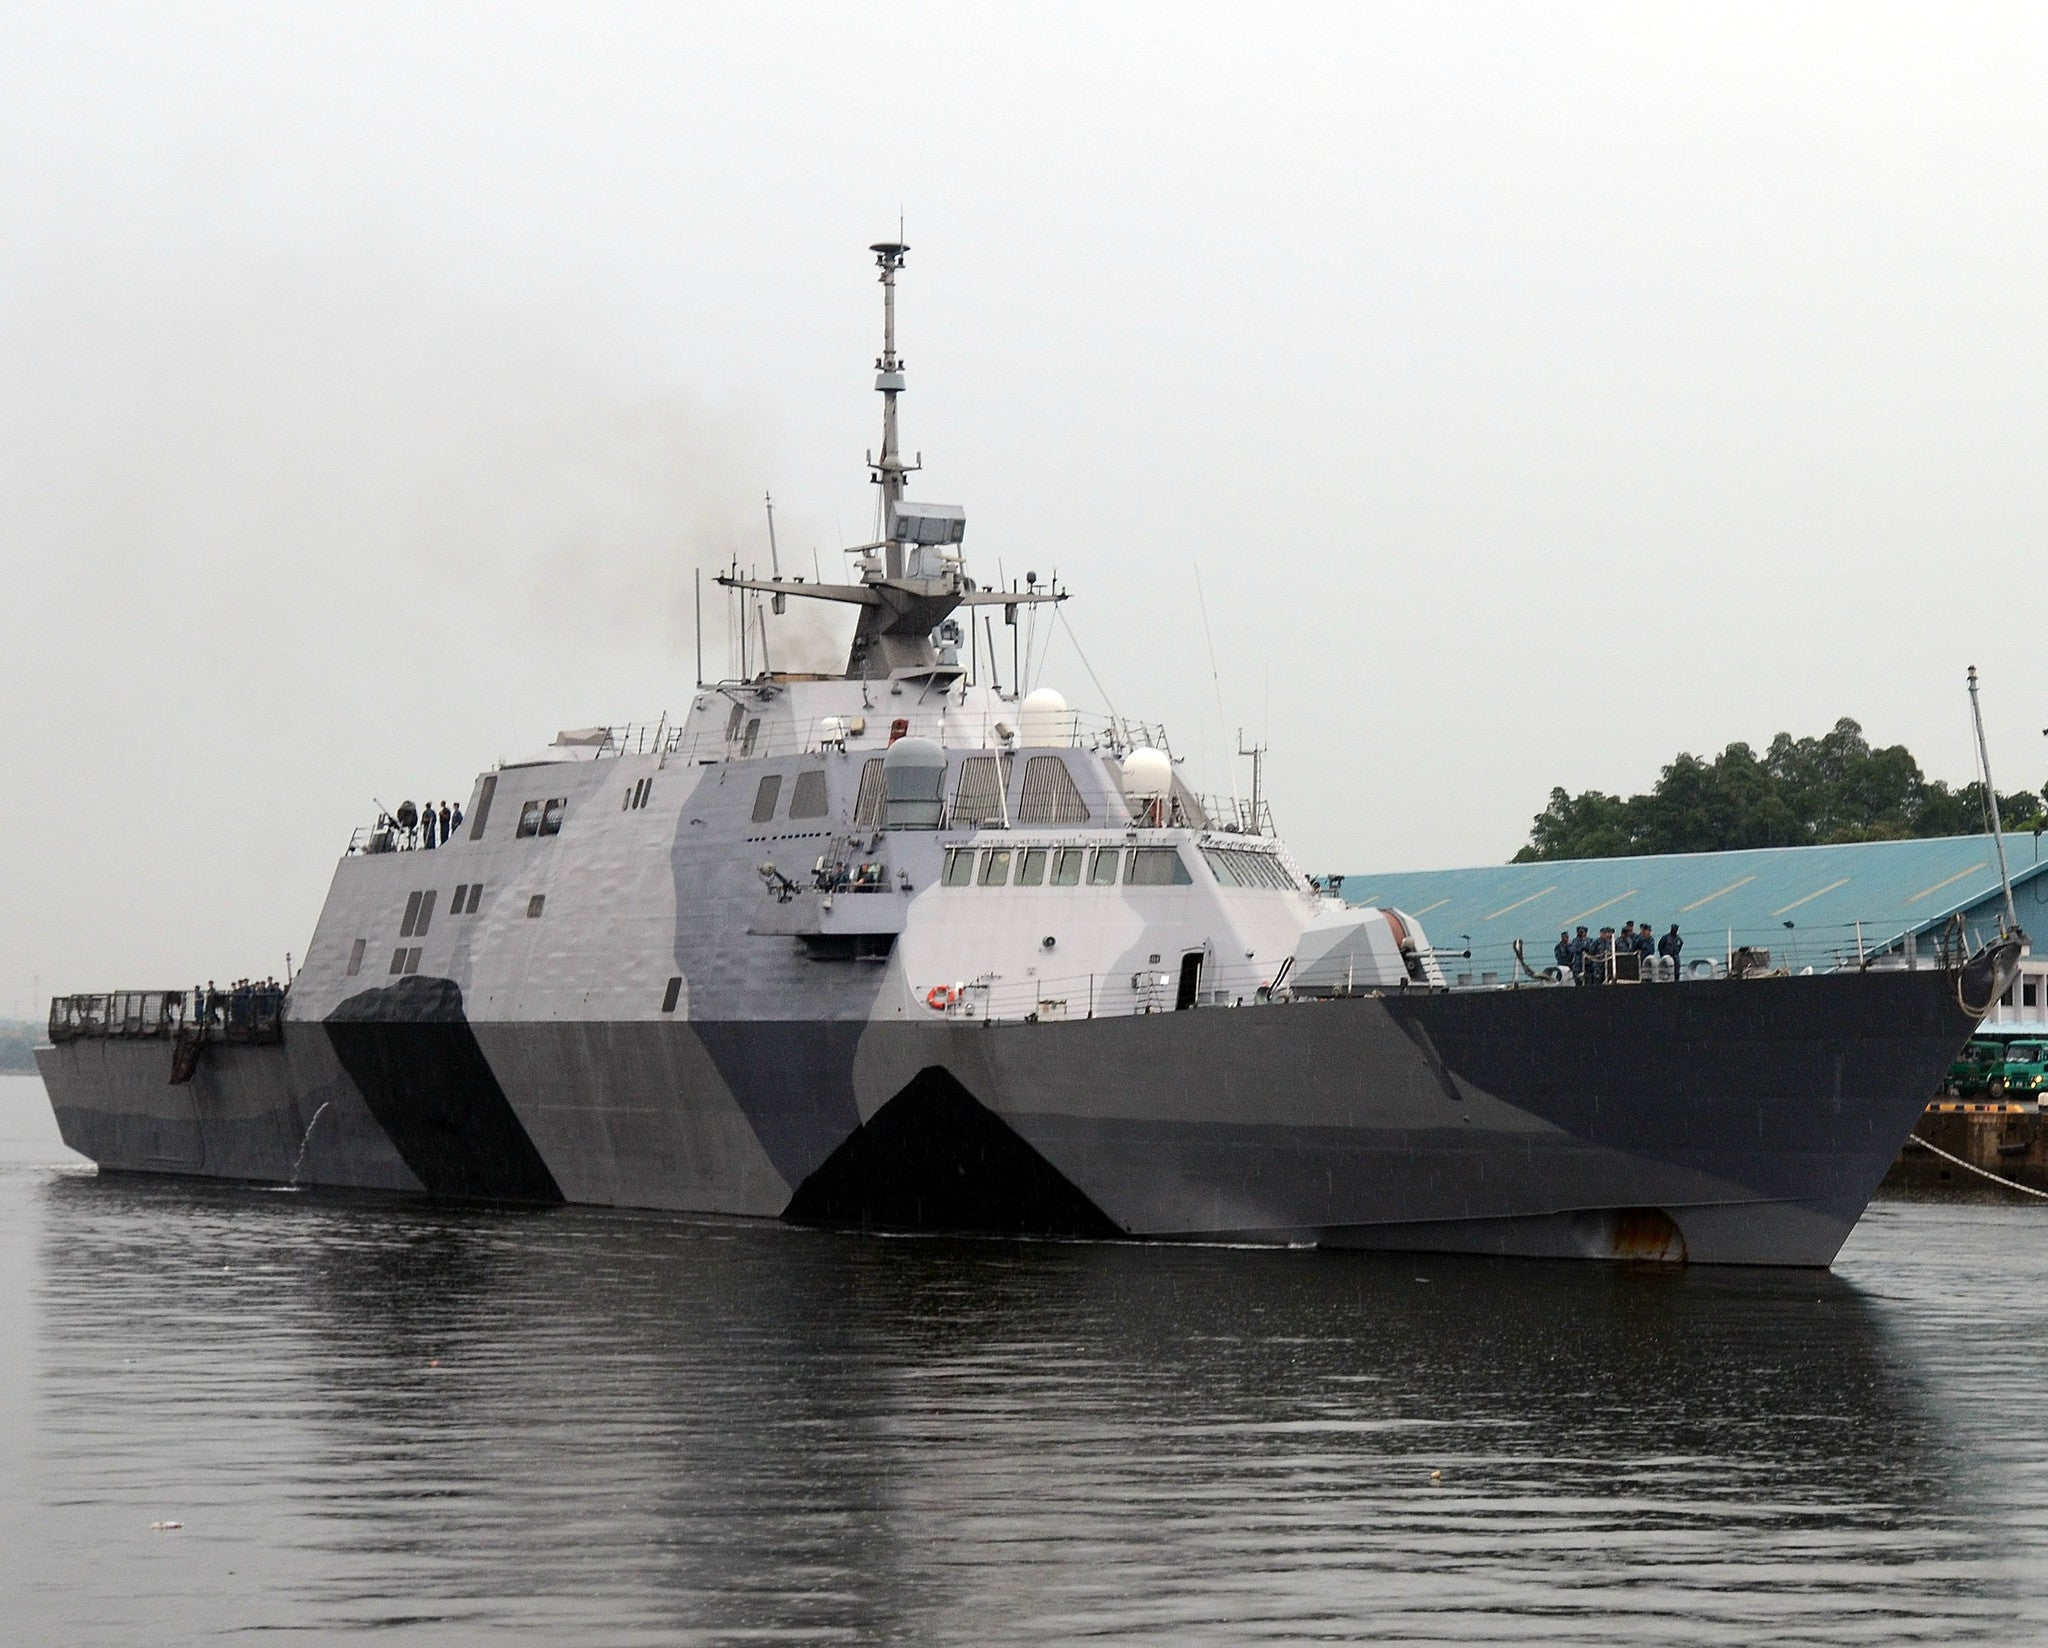 "USS Freedom LCS-1 SEmbawang, Singapore August 2, 2013 - 8 x 10"" Photograph"